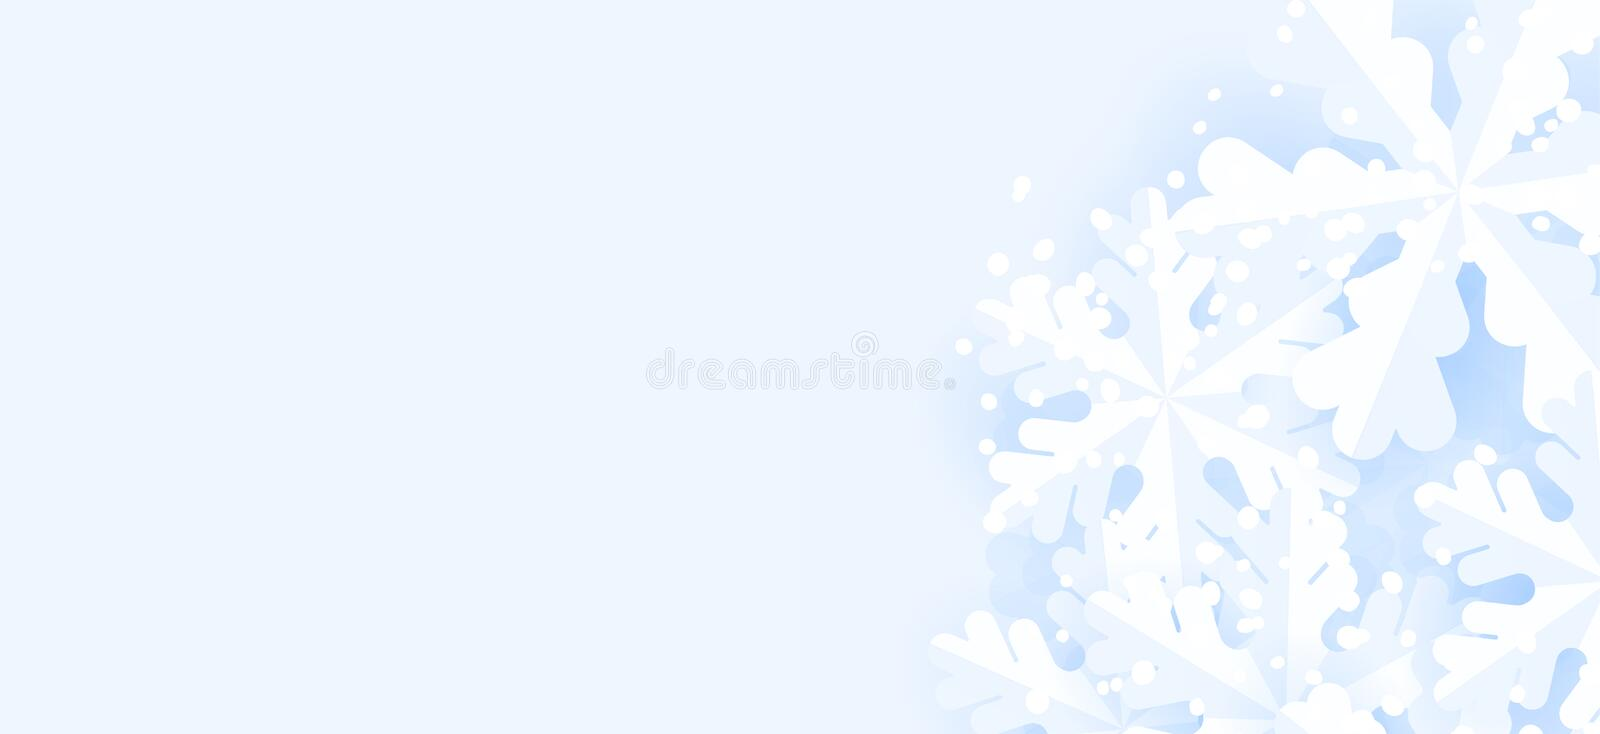 Blue winter horizontal background with snowflakes for web banner and mailing. stock illustration